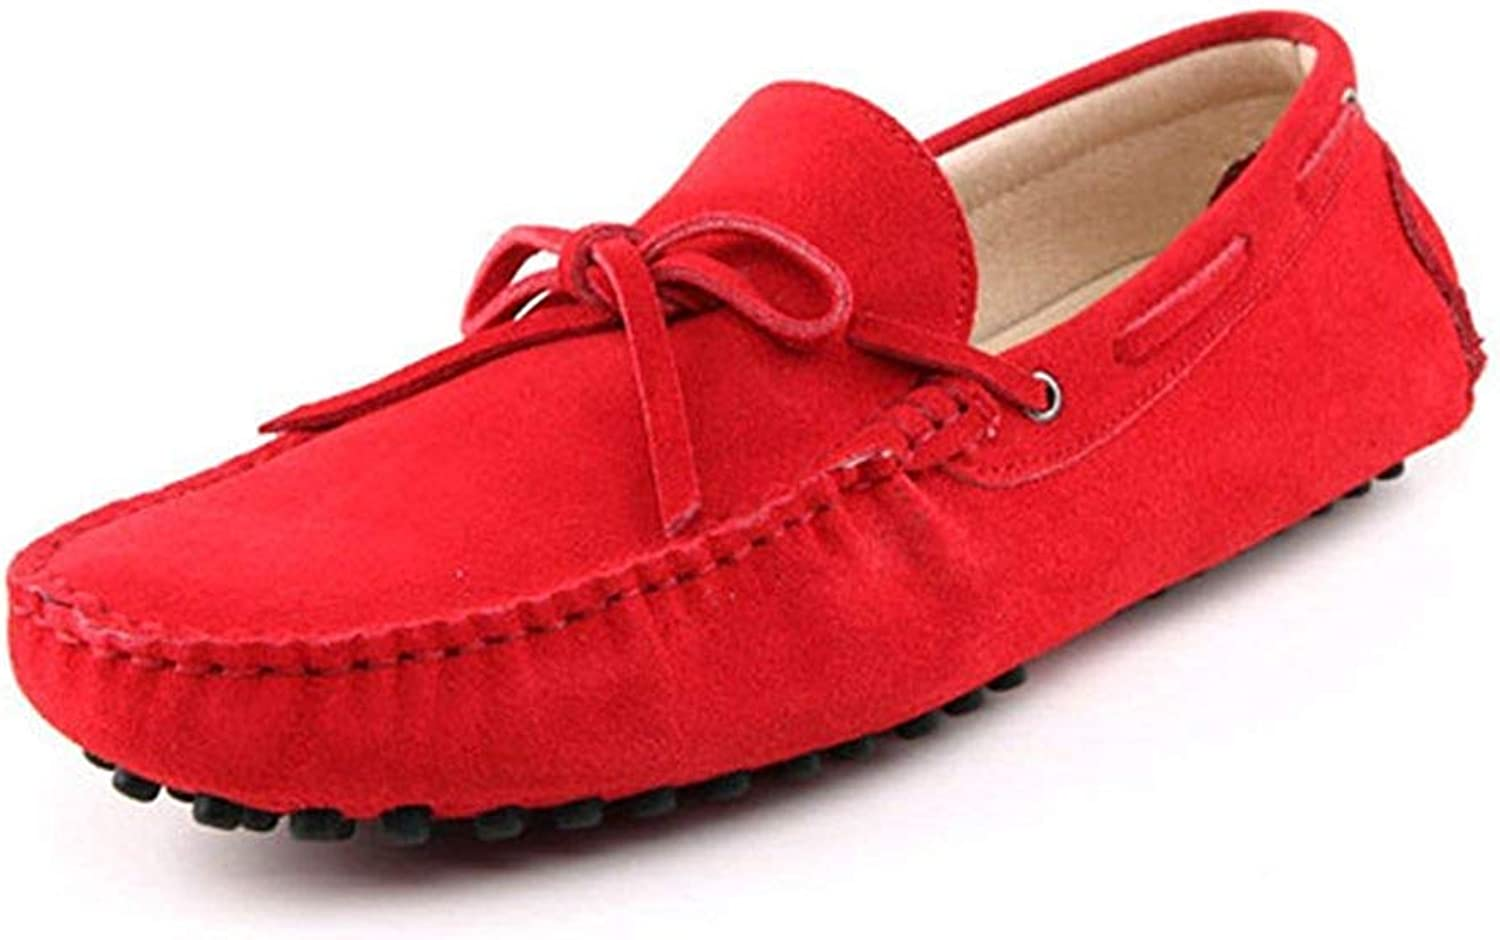 ZHRUI Men's New Knot Red Suede Driving Loafers Penny Boat shoes 6.5 M UK (color   -, Size   -)